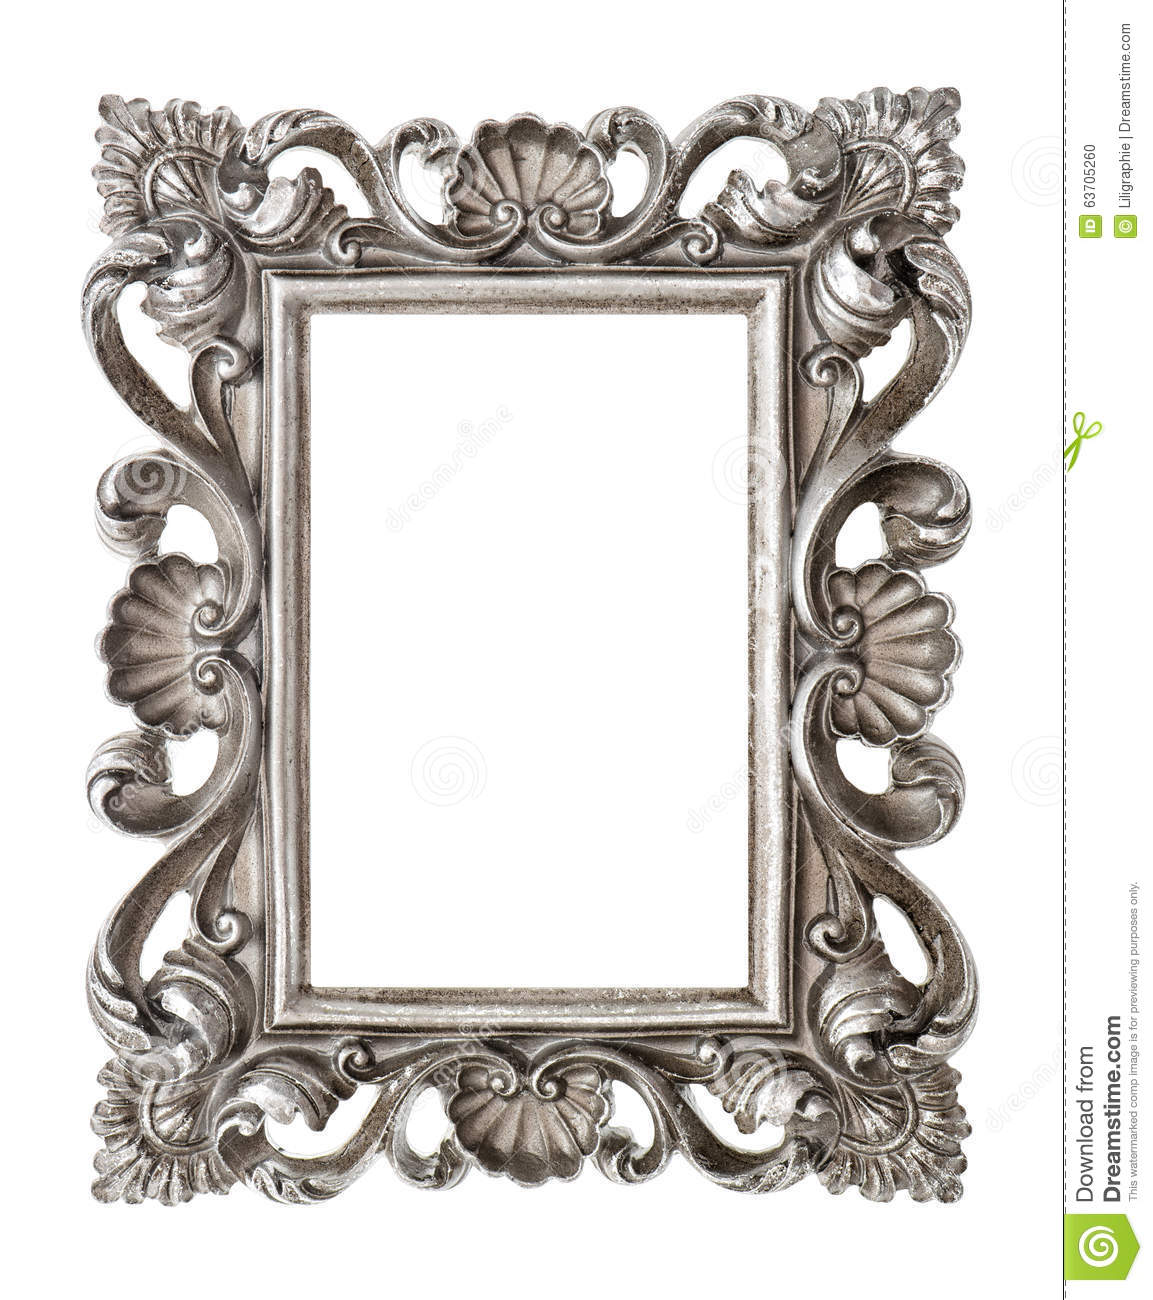 frame your picture photo image vintage silver baroque object stock photo image of. Black Bedroom Furniture Sets. Home Design Ideas